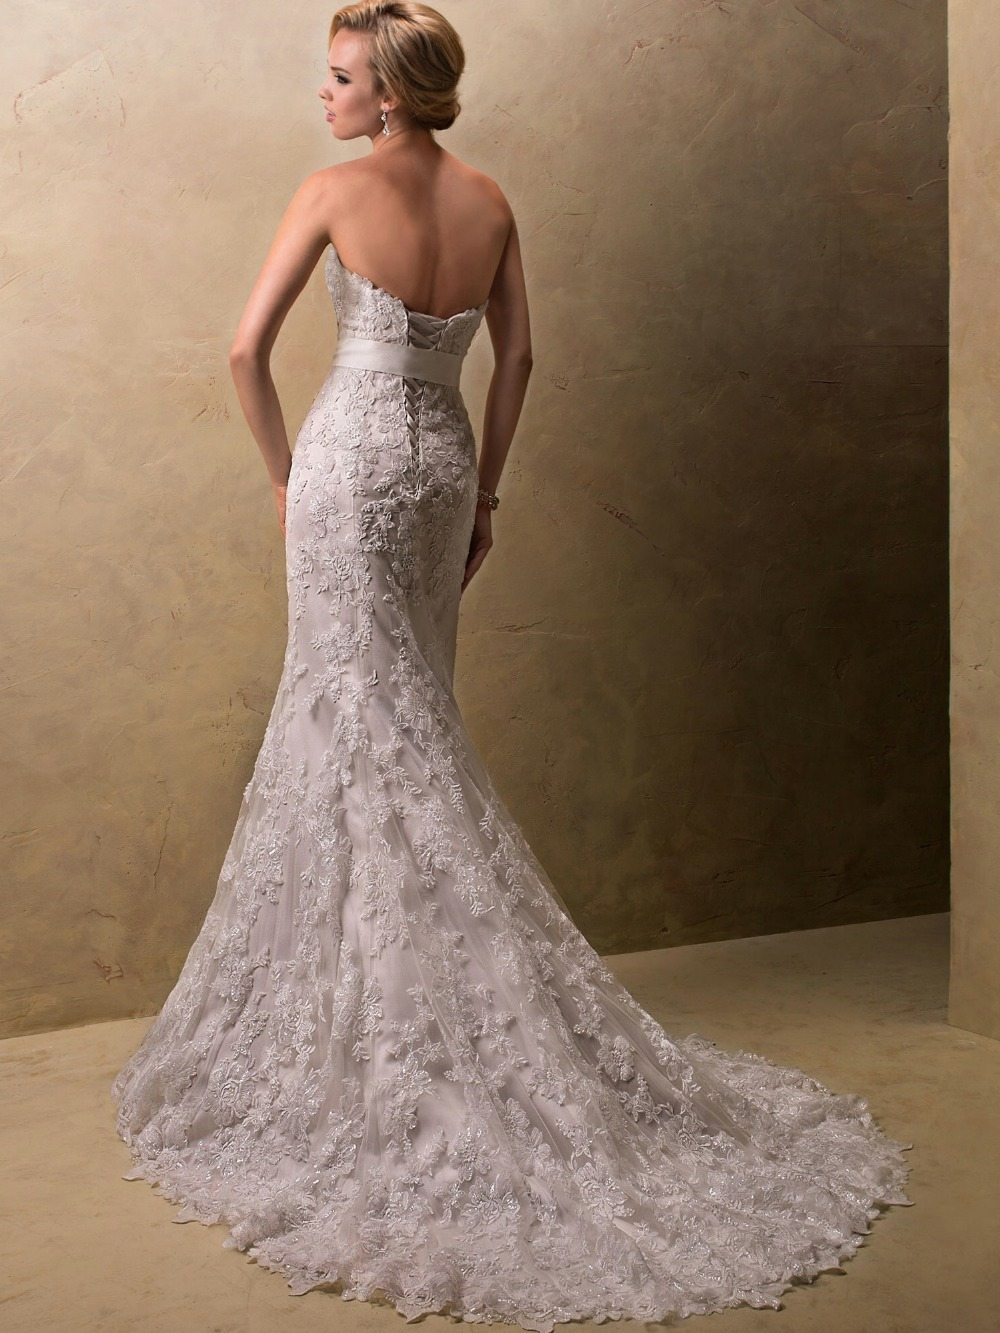 Champagne lace strapless wedding dress for Lace champagne wedding dress